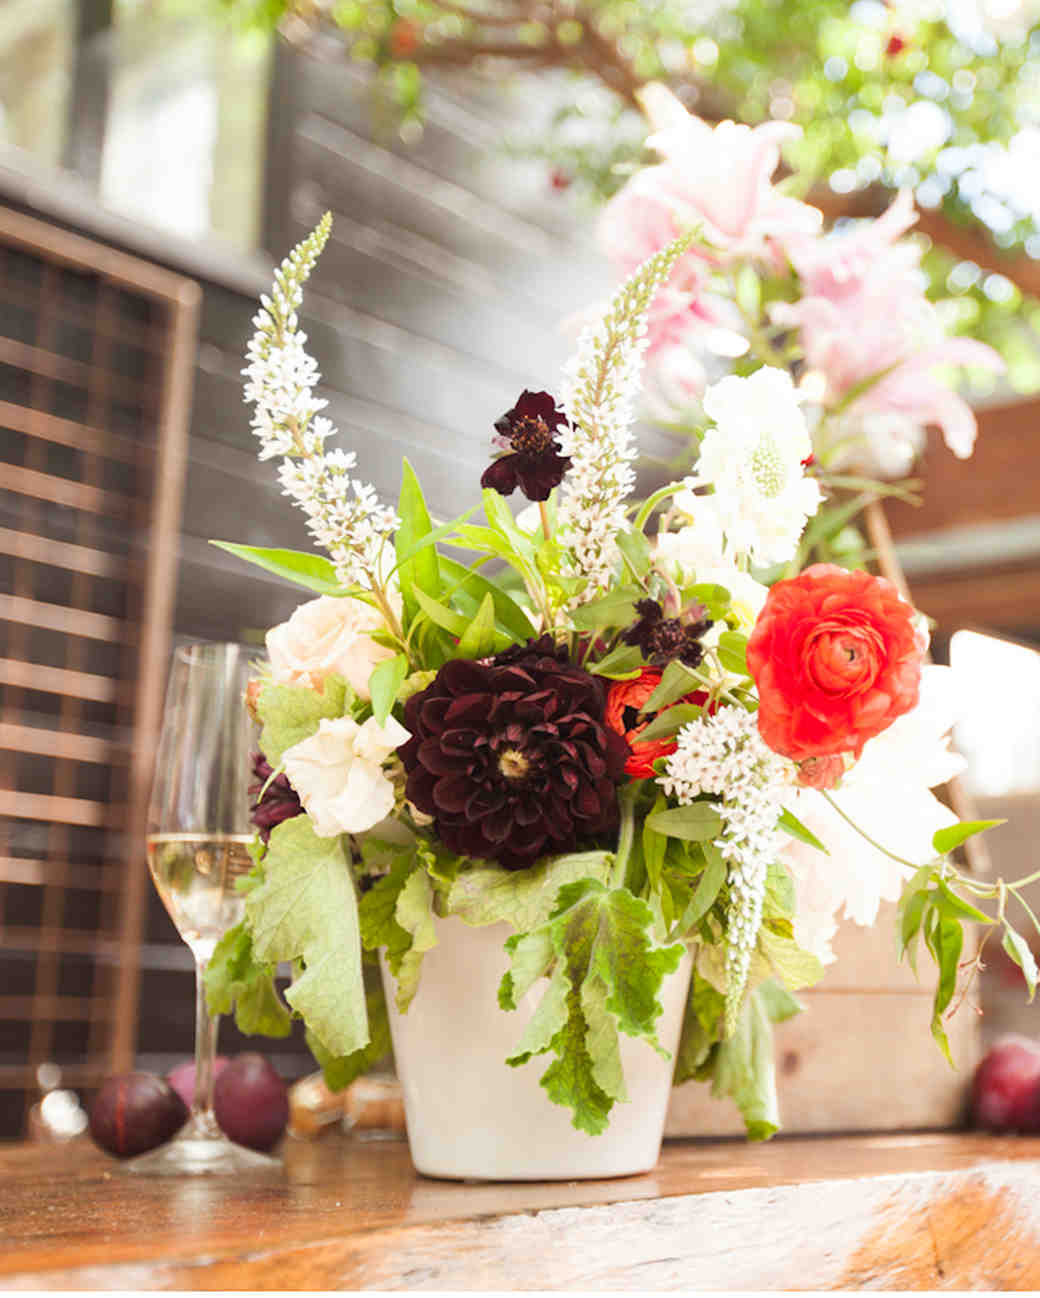 Wedding Flower Center Pieces: The Prettiest Bridal Shower Centerpieces